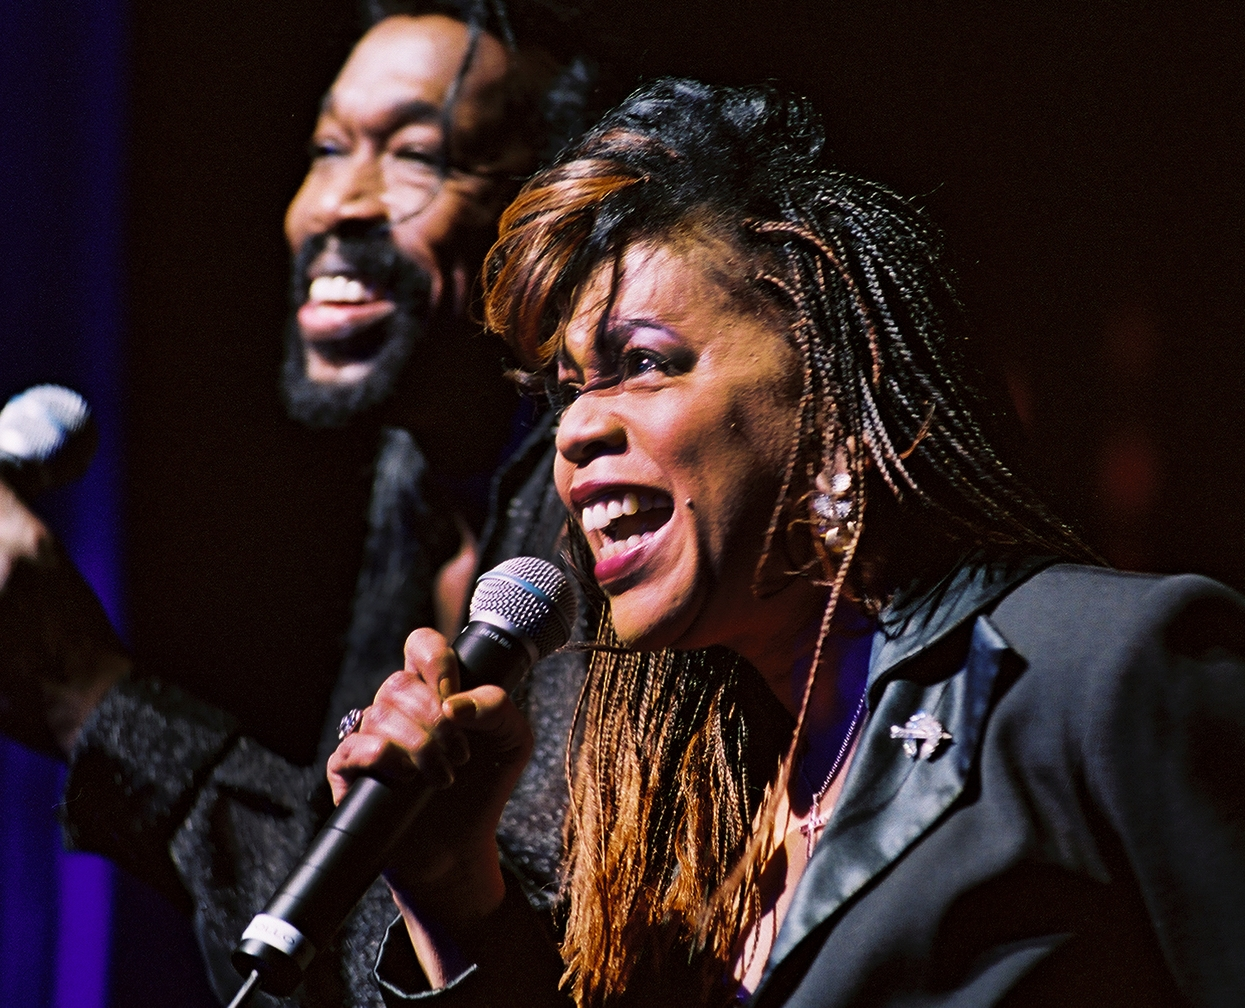 Nick Ashford and Valerie Simpson .jpg